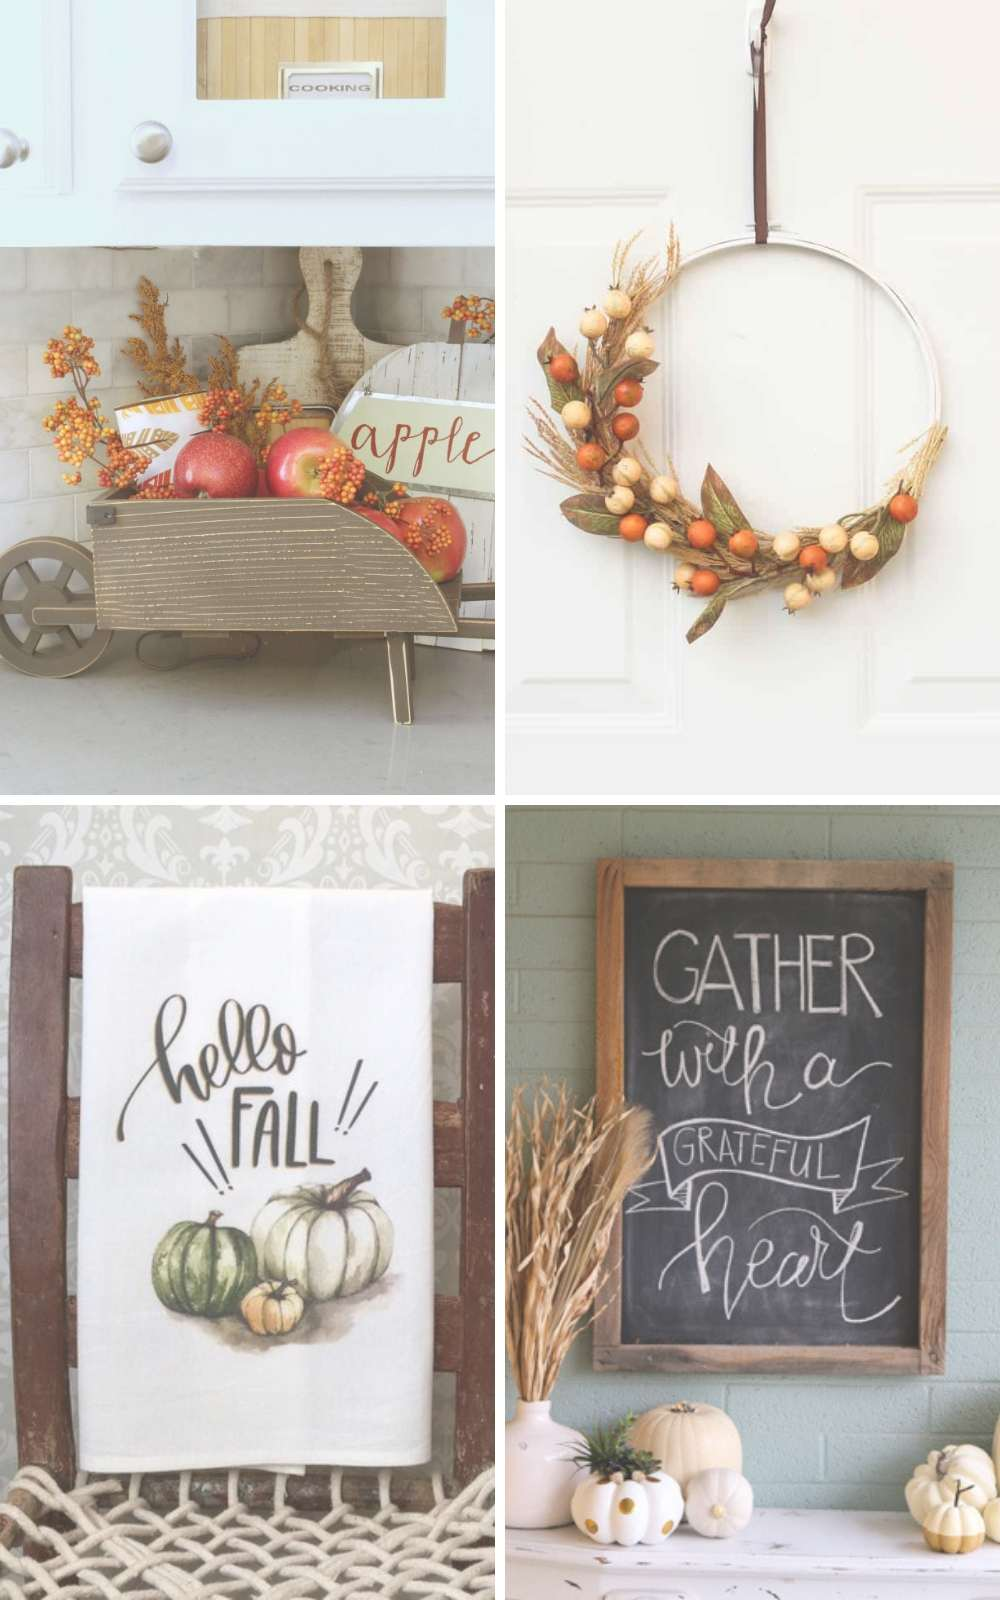 Top 8 Fall Kitchen Decor Ideas We Love #kitchen #falldecor #fall #home #homedecor